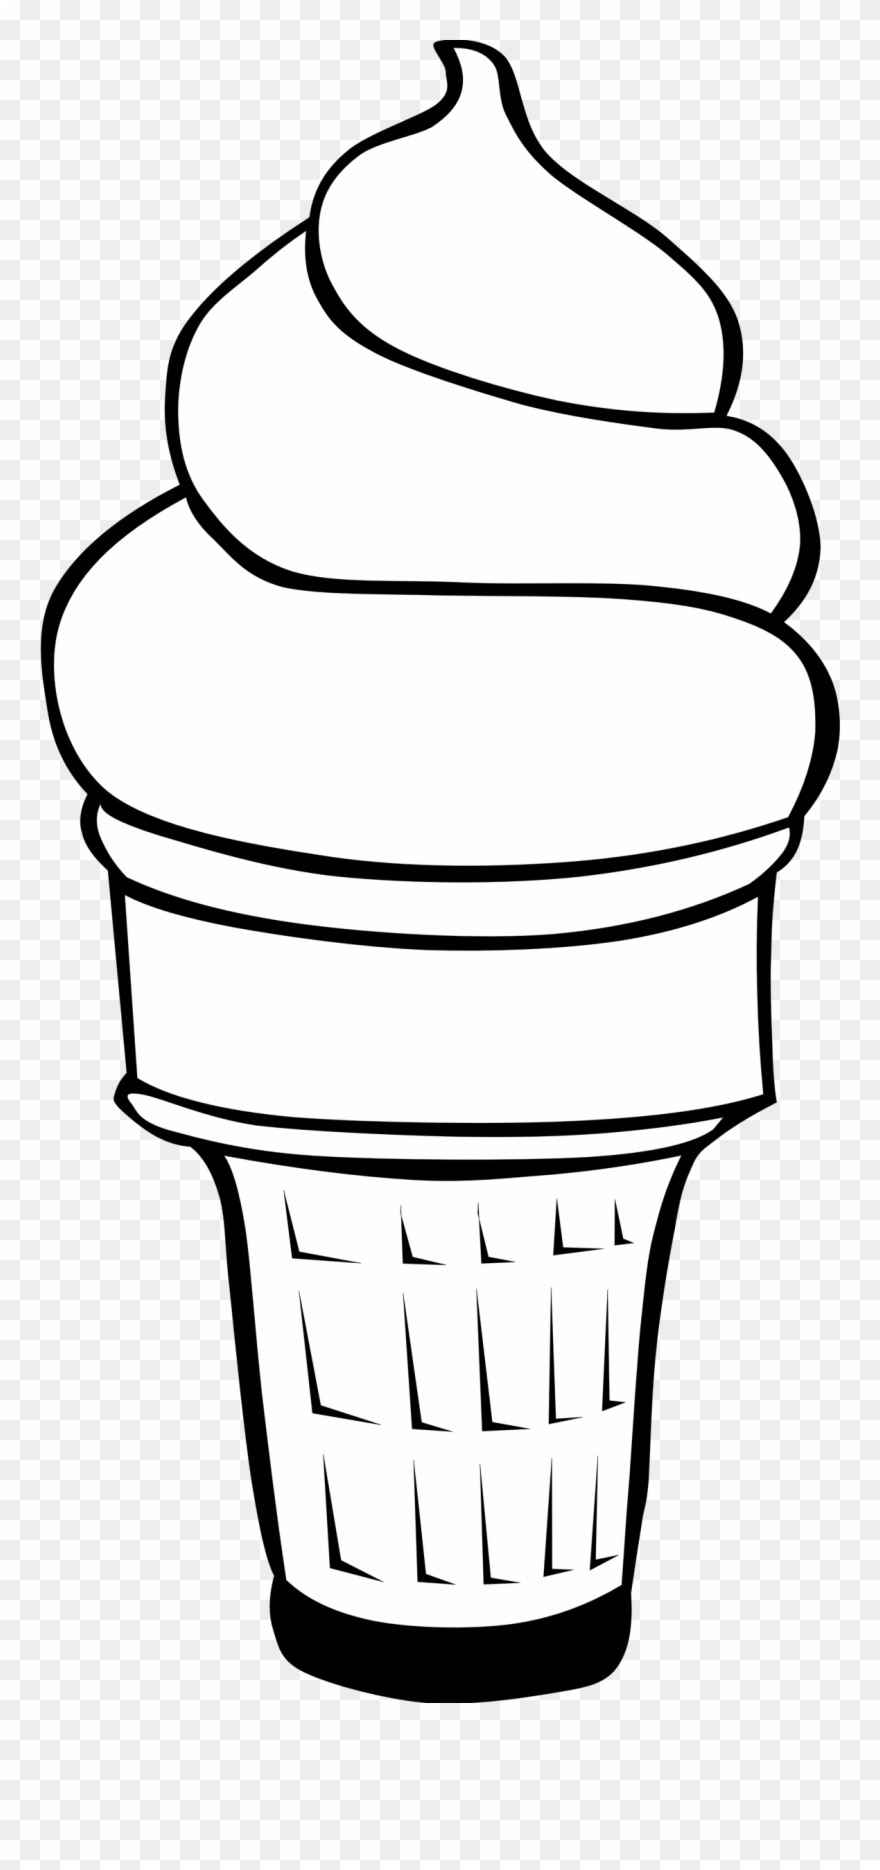 Flat ice cream cone black and white clipart vector black and white Ice Cream Cone Line Drawing at PaintingValley.com | Explore ... vector black and white